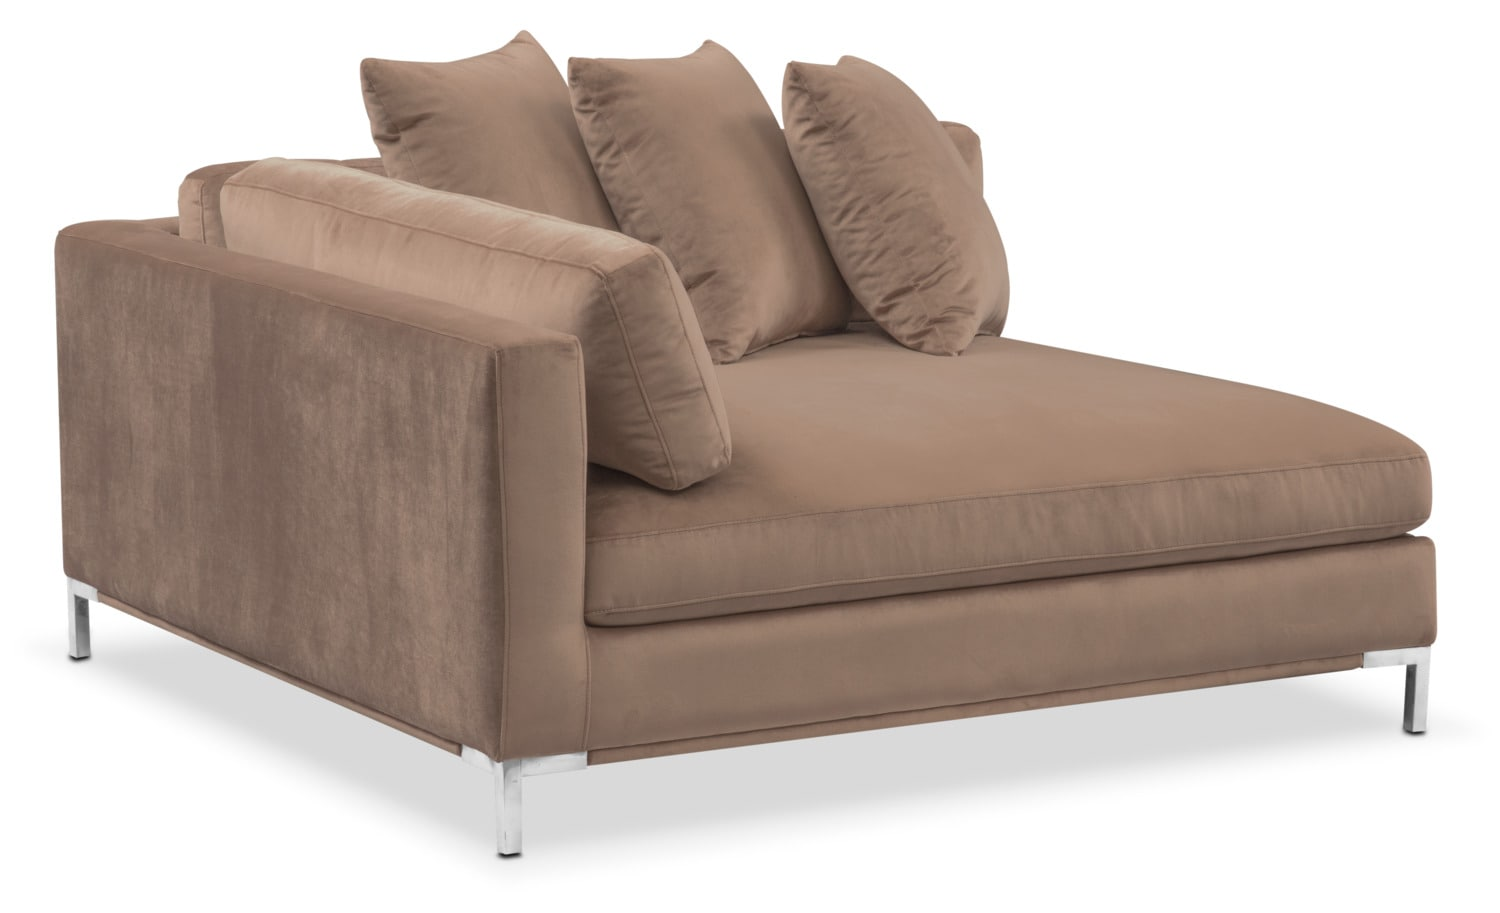 Moda Corner Sofa - Mushroom  sc 1 st  American Signature Furniture : american signature furniture sectionals - Sectionals, Sofas & Couches